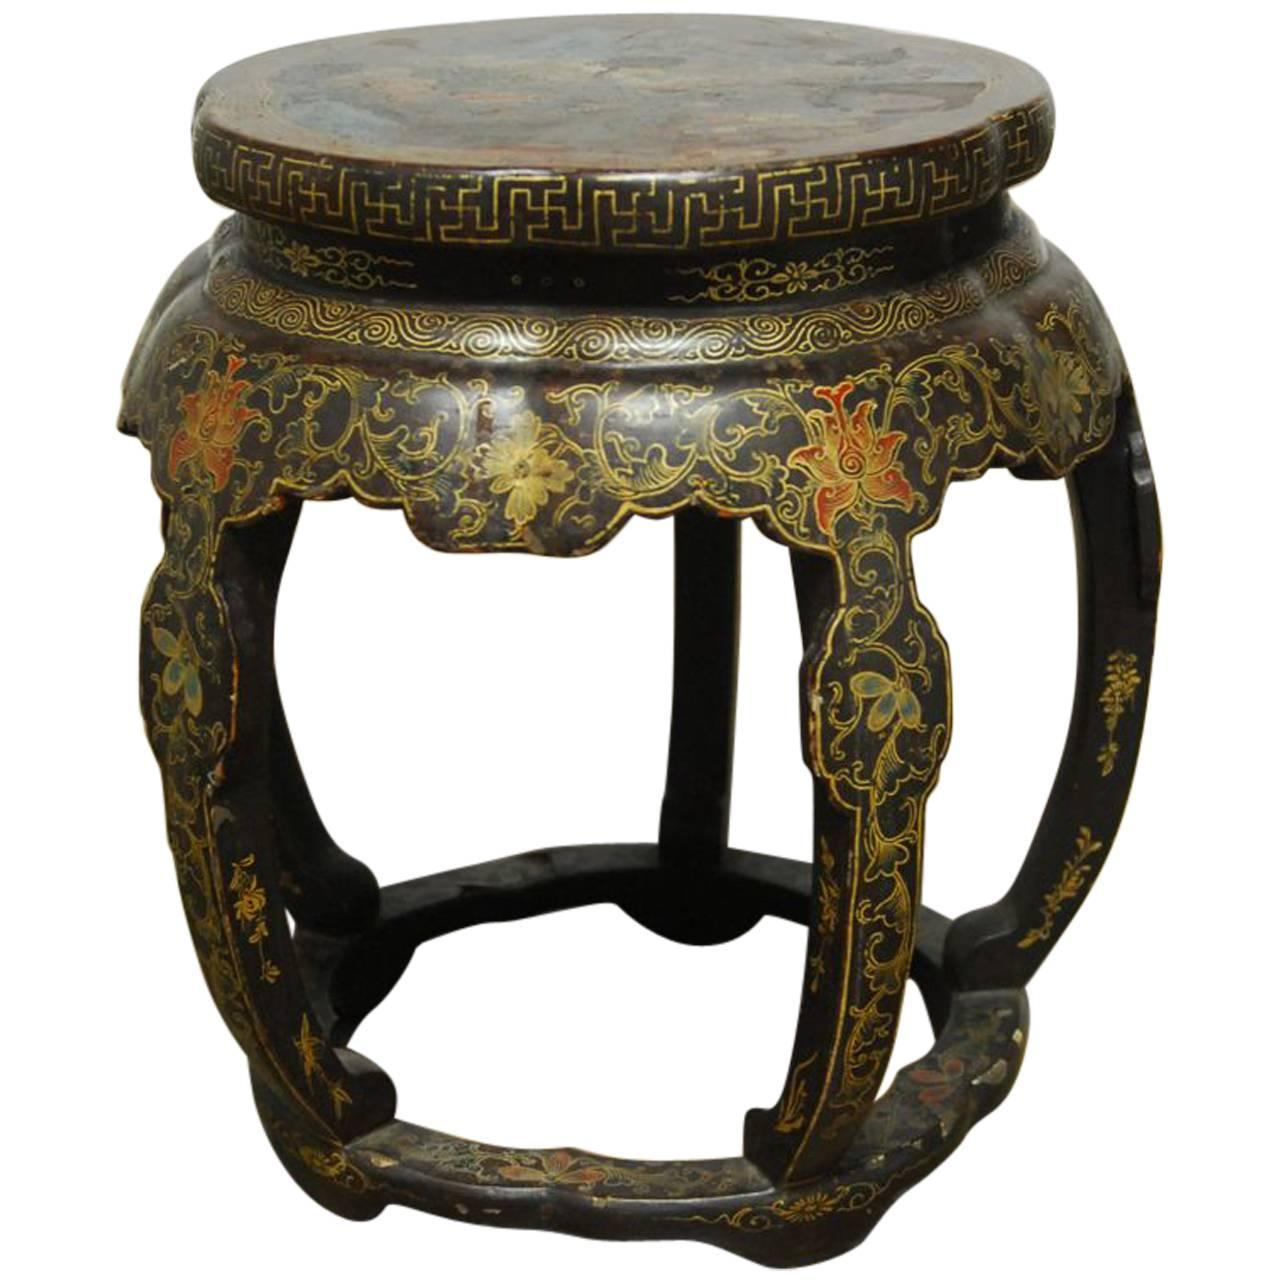 Chinese black lacquer garden stool side table at 1stdibs for Garden stool side table